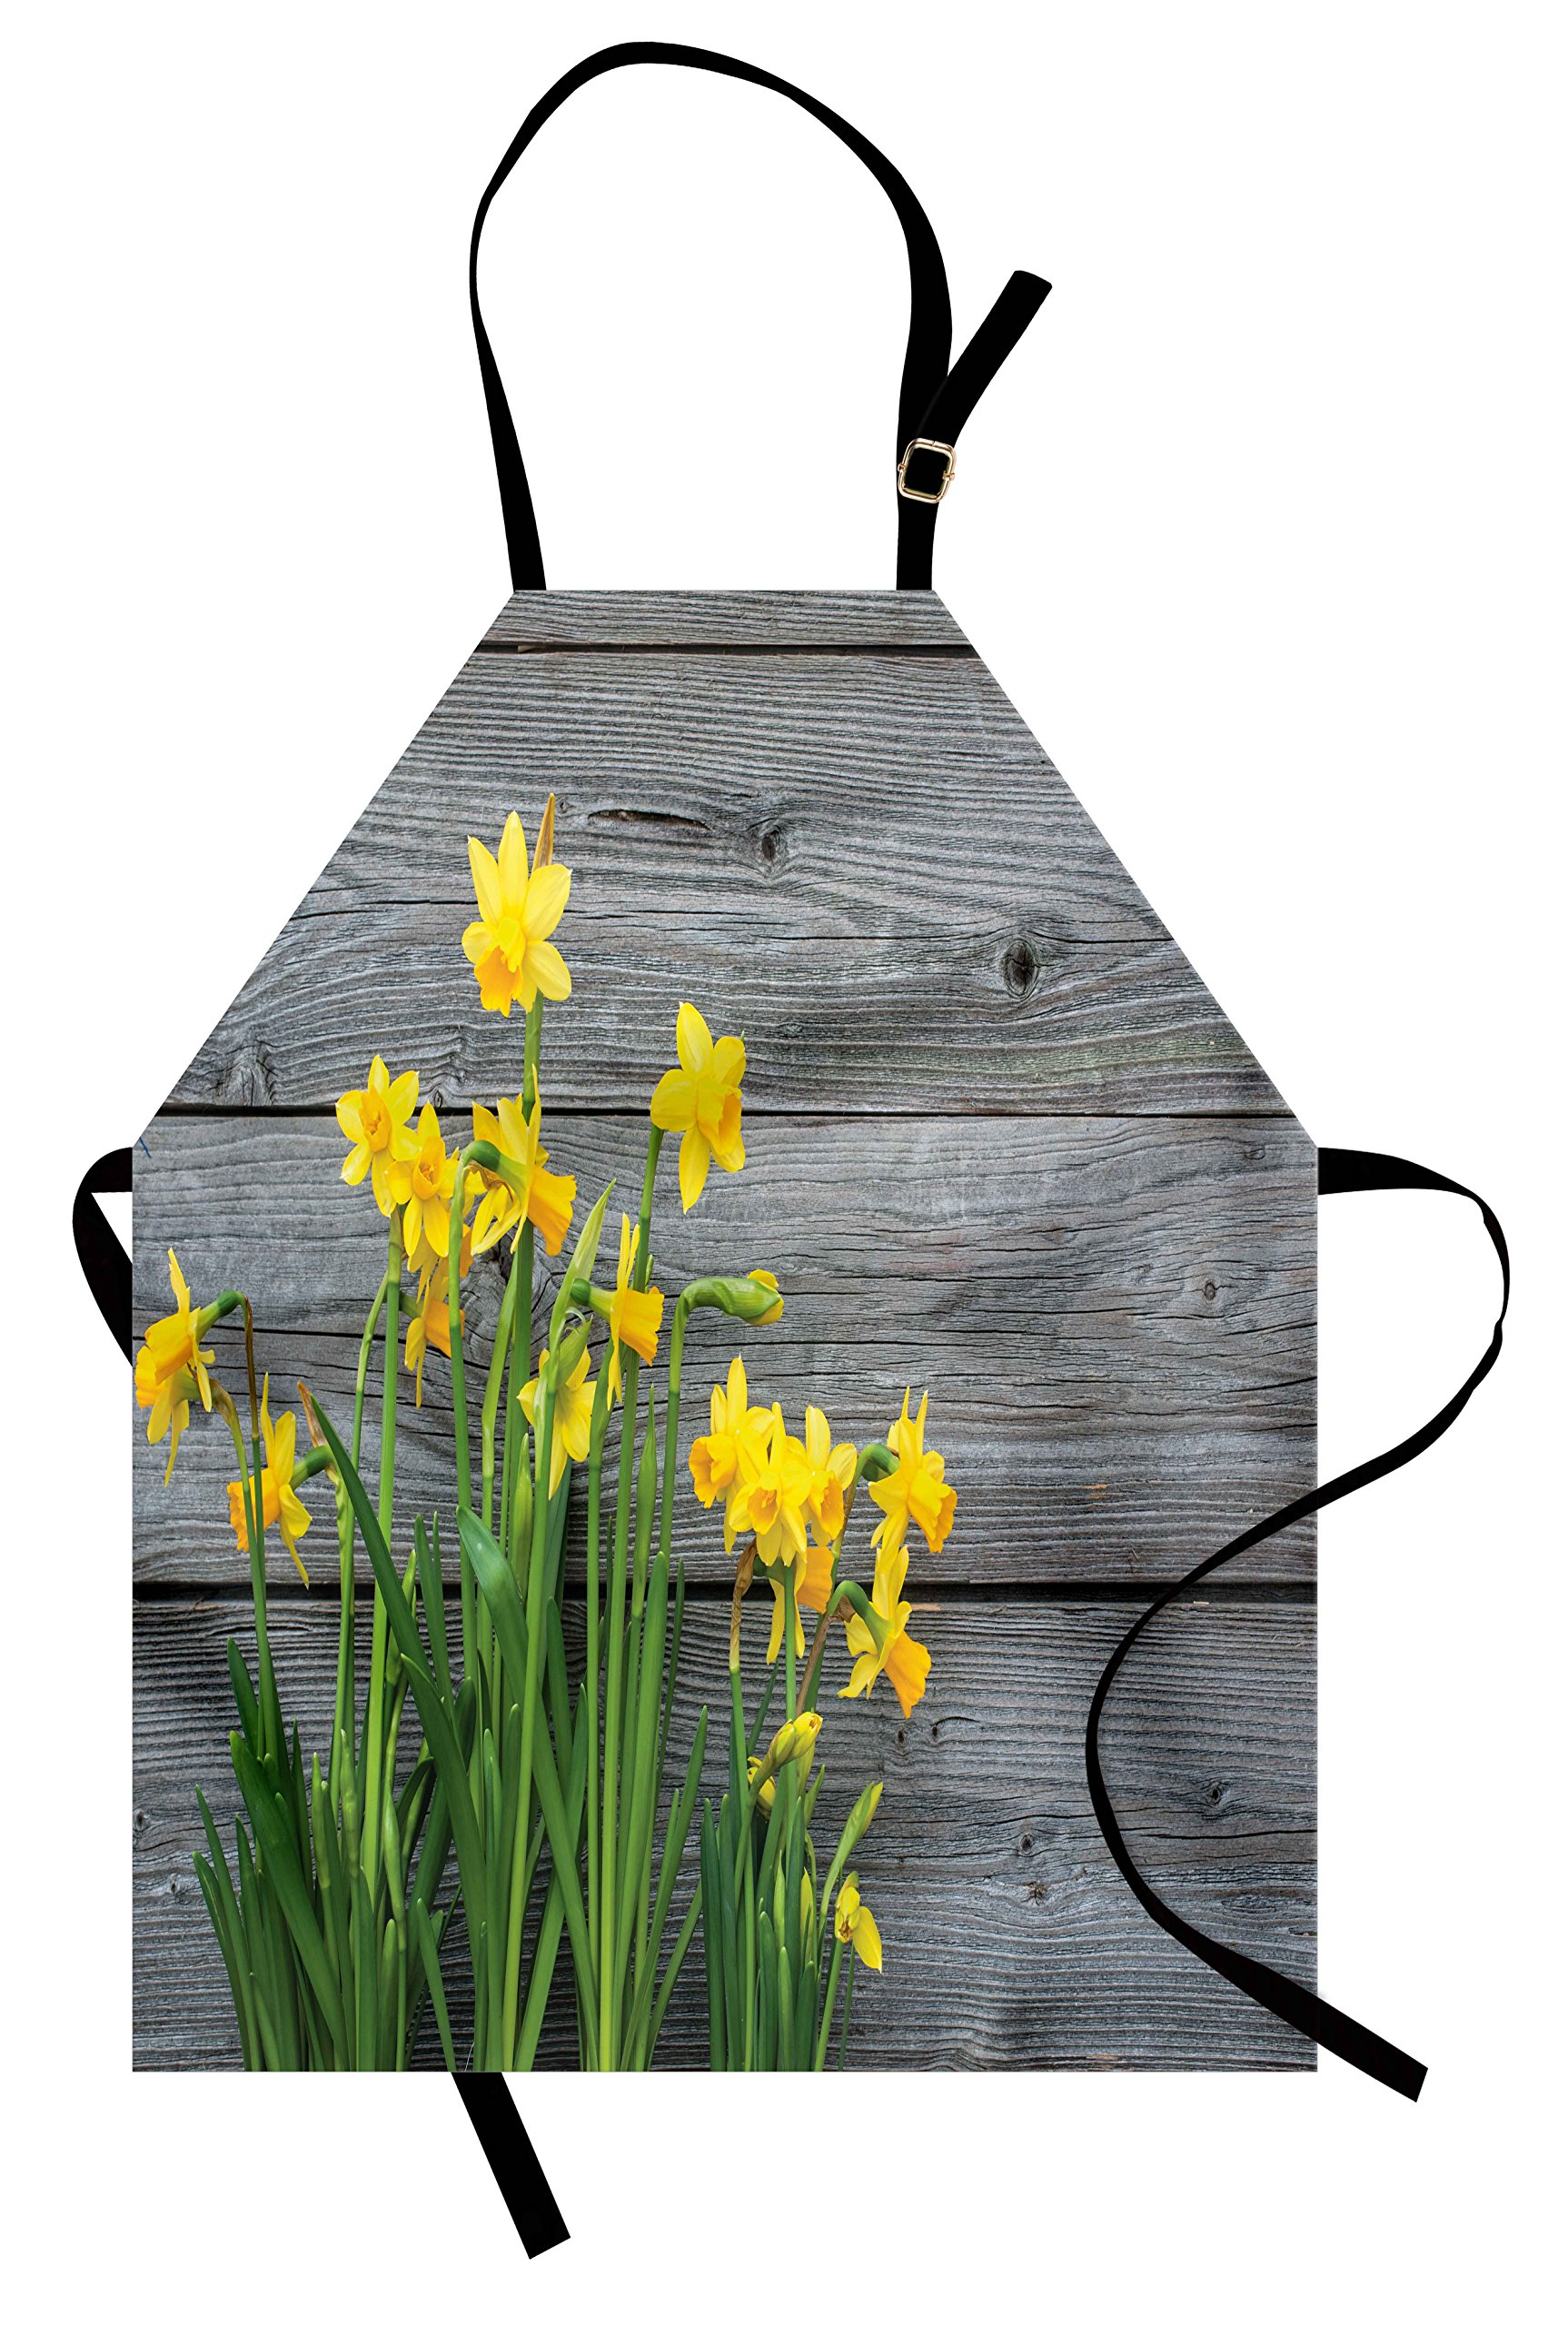 Ambesonne Yellow Flower Apron, Bouquet of Daffodils on Wood Planks Gardening Rustic Country Life Theme, Unisex Kitchen Bib Apron with Adjustable Neck for Cooking Baking Gardening, Yellow Grey